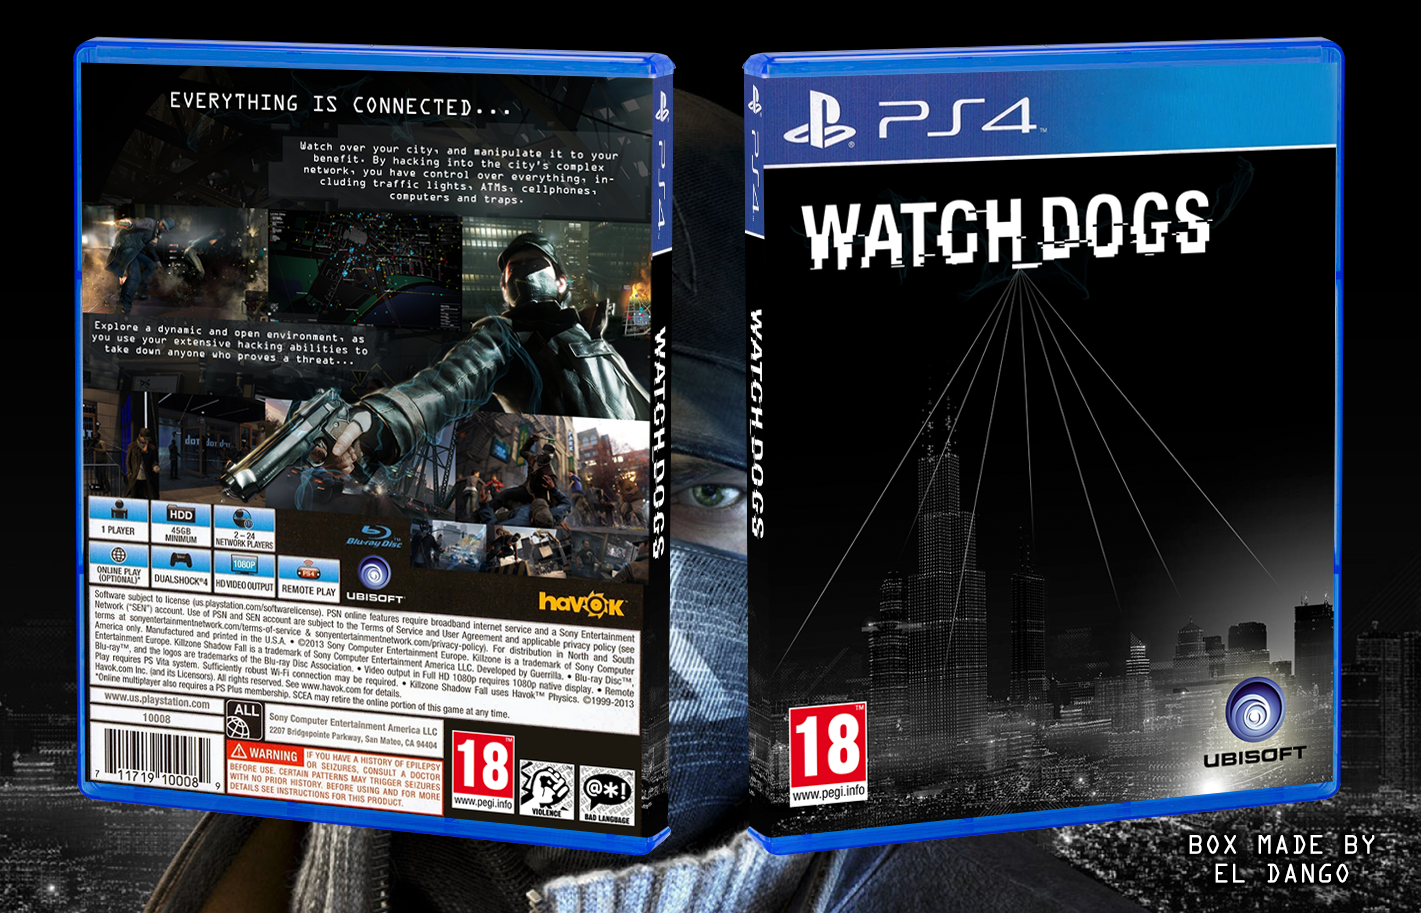 Watch Dogs PlayStation 4 Box Art Cover by El Dango Watch Dogs Ps4 Box Art